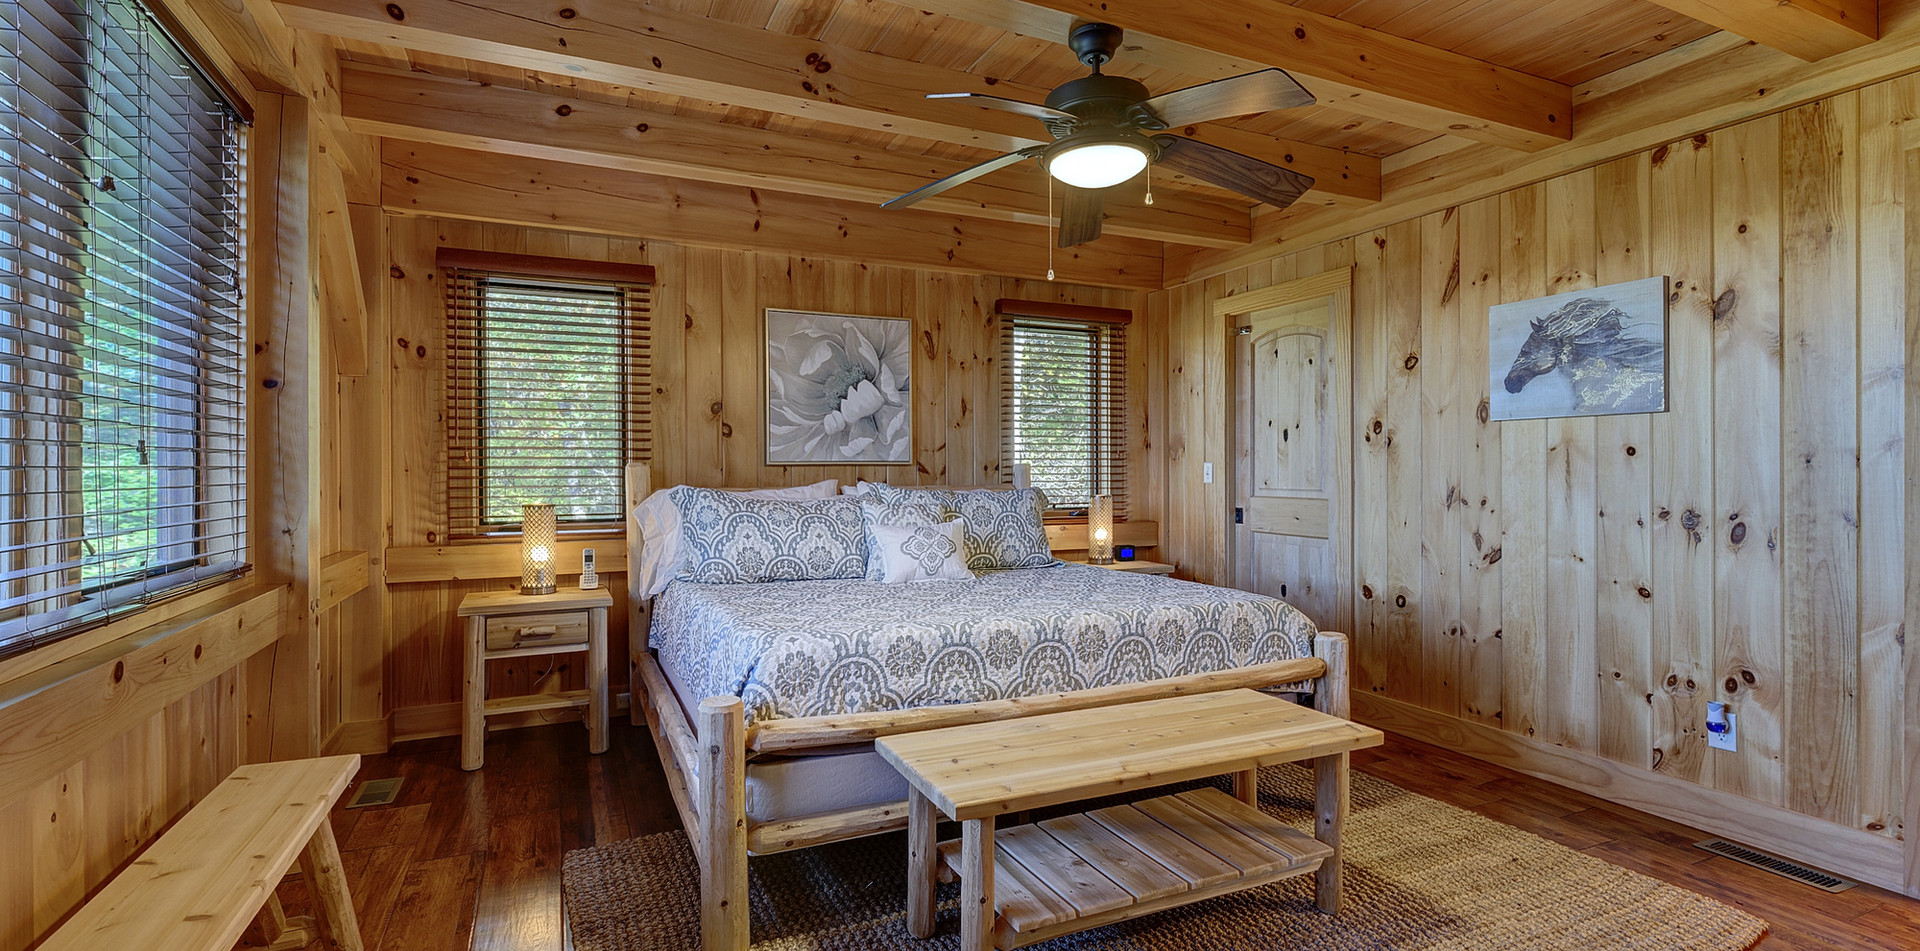 """The master bedroom features rustic white cedar log furniture. Relax in the King-size bed which has 12"""" memory foam mattress and fine linens."""